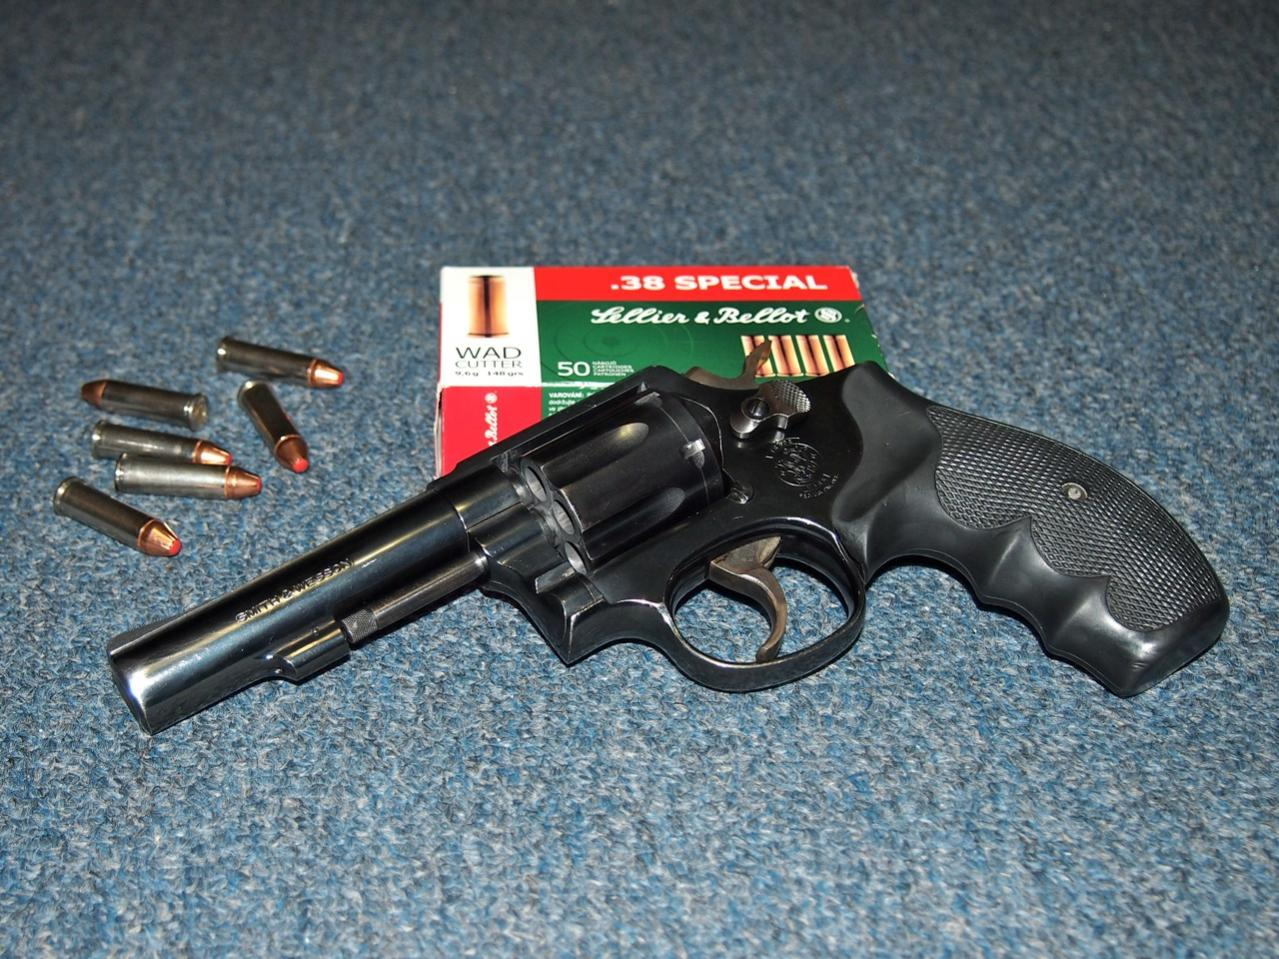 New to firearms: Properties of your ideal gun for home defense?-model10.jpg